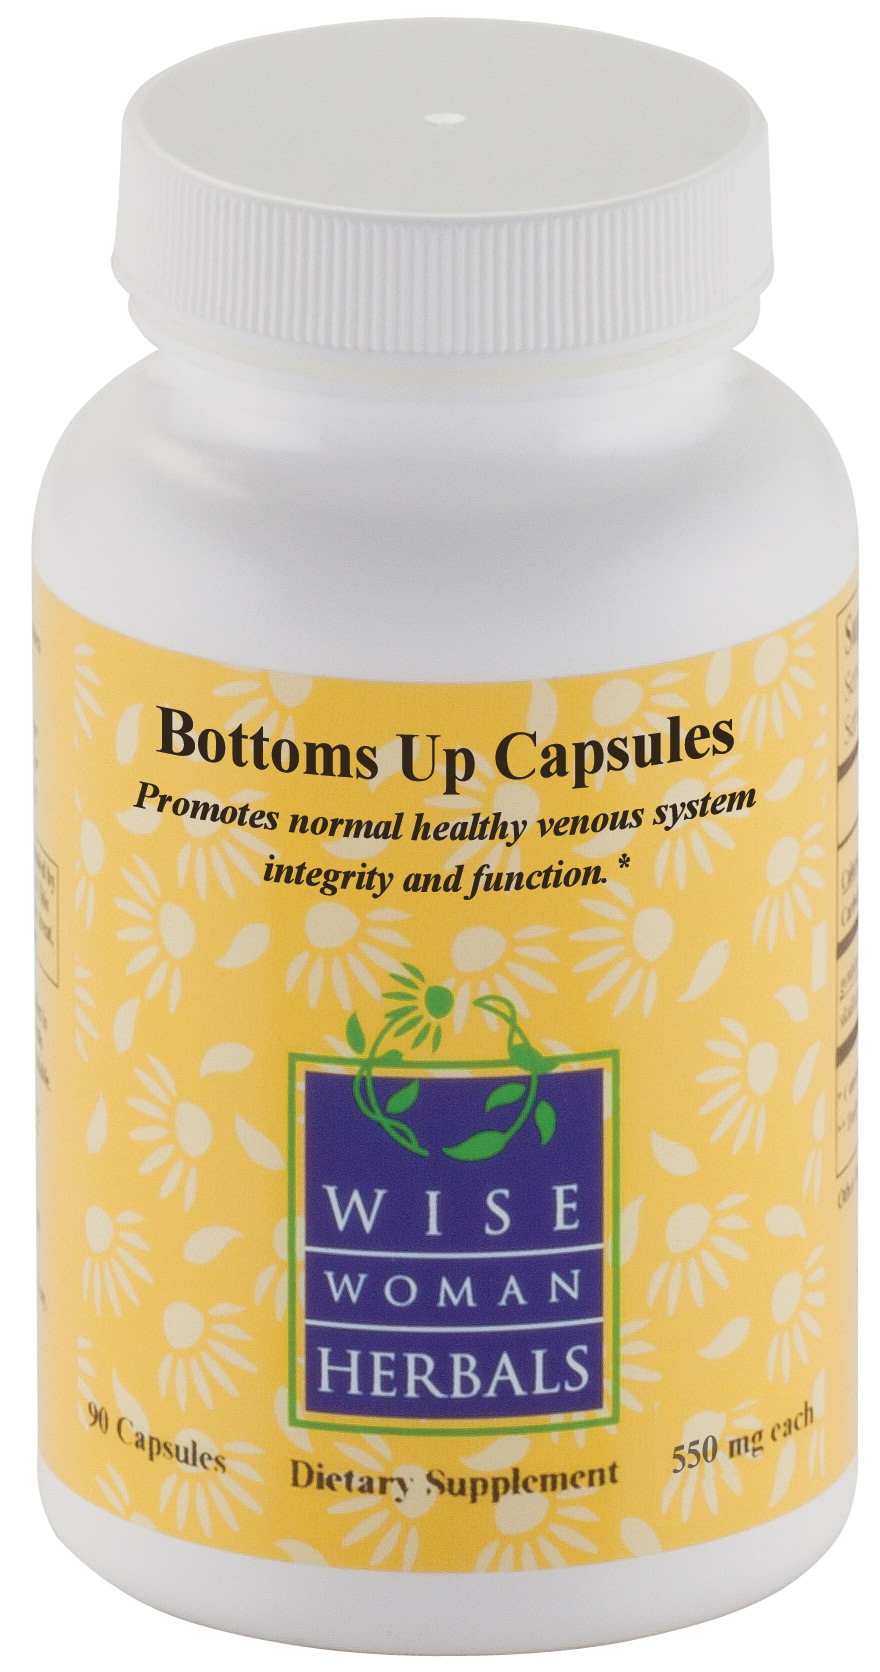 Bottoms Up Capsules, 90 ct (Expires 12/19)